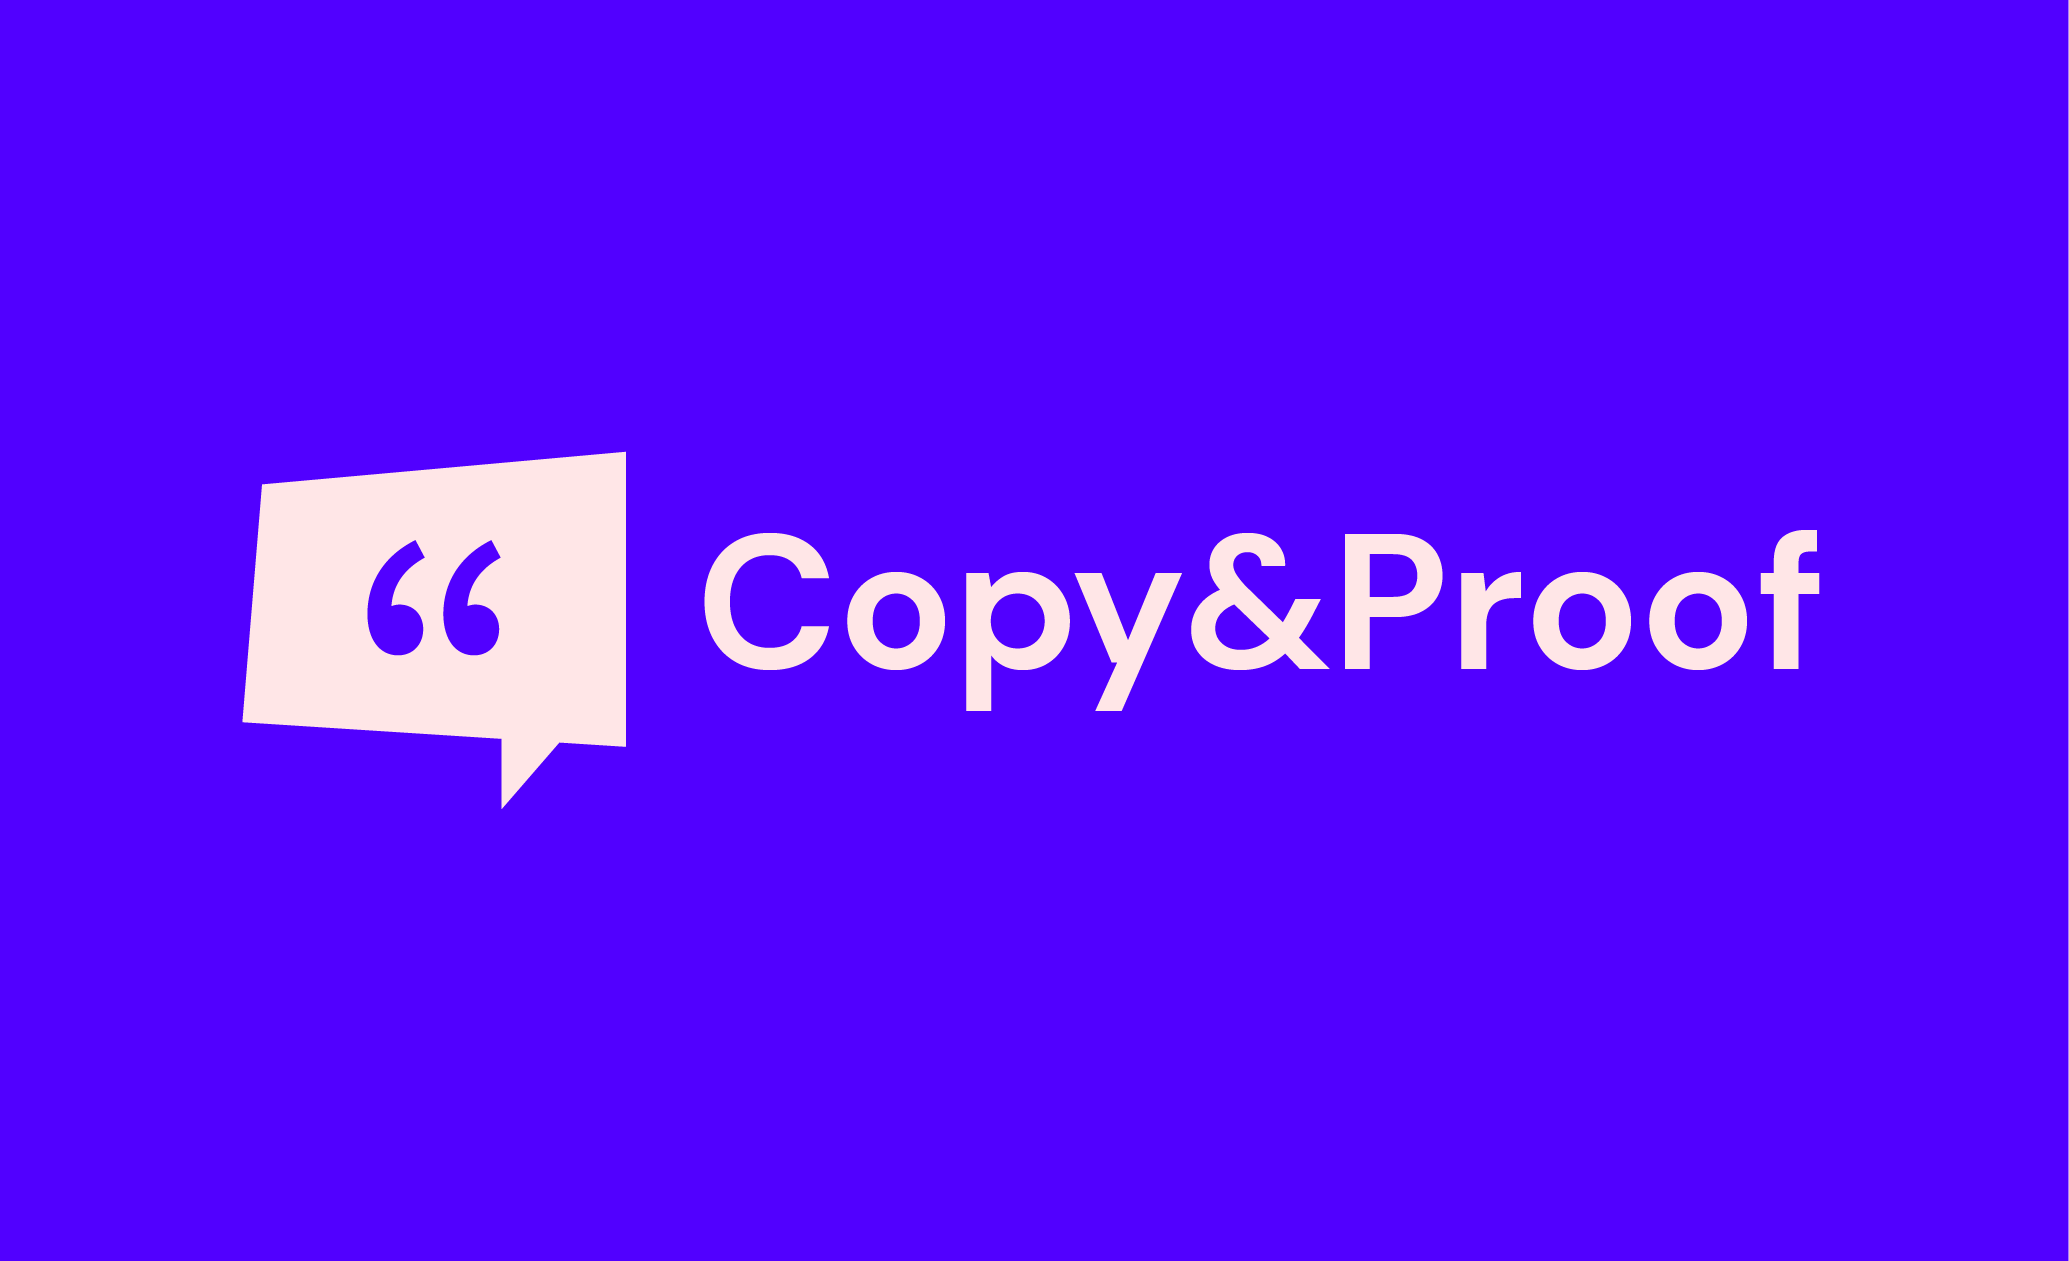 Final version of the Copy and Proof logo with a blue background and white text